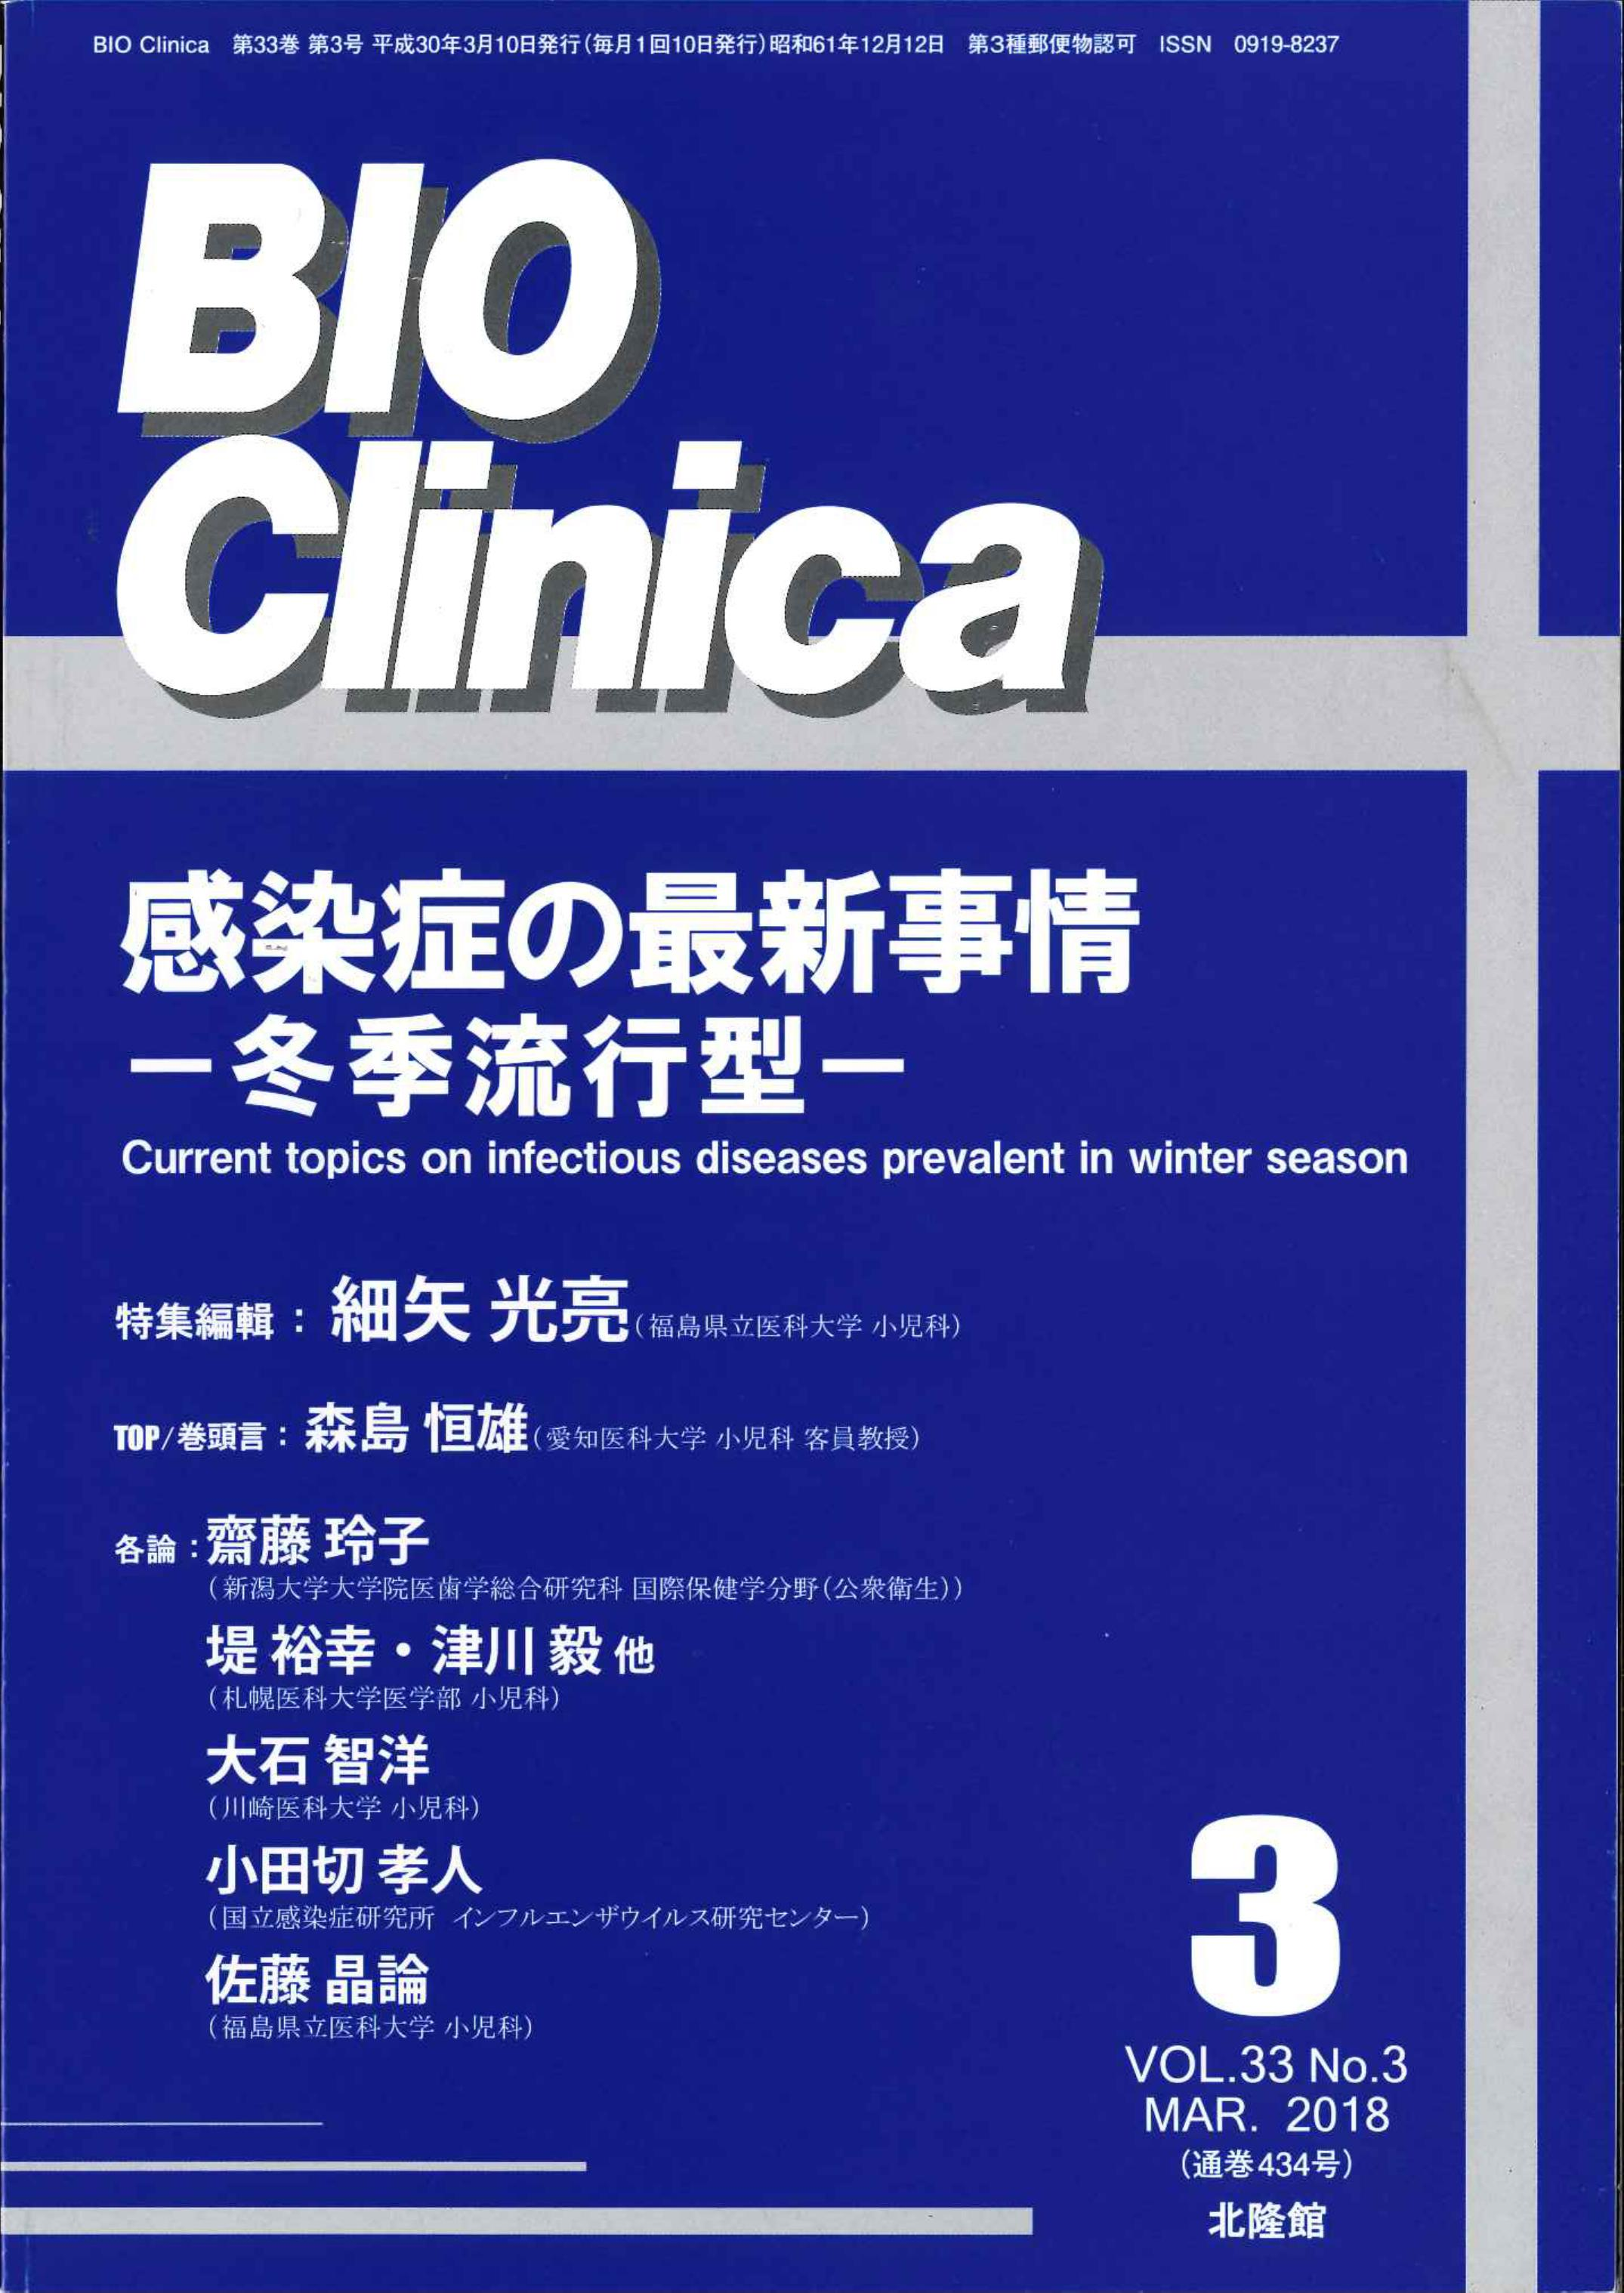 BIO Clinica vol33 no.3 MAR.2018